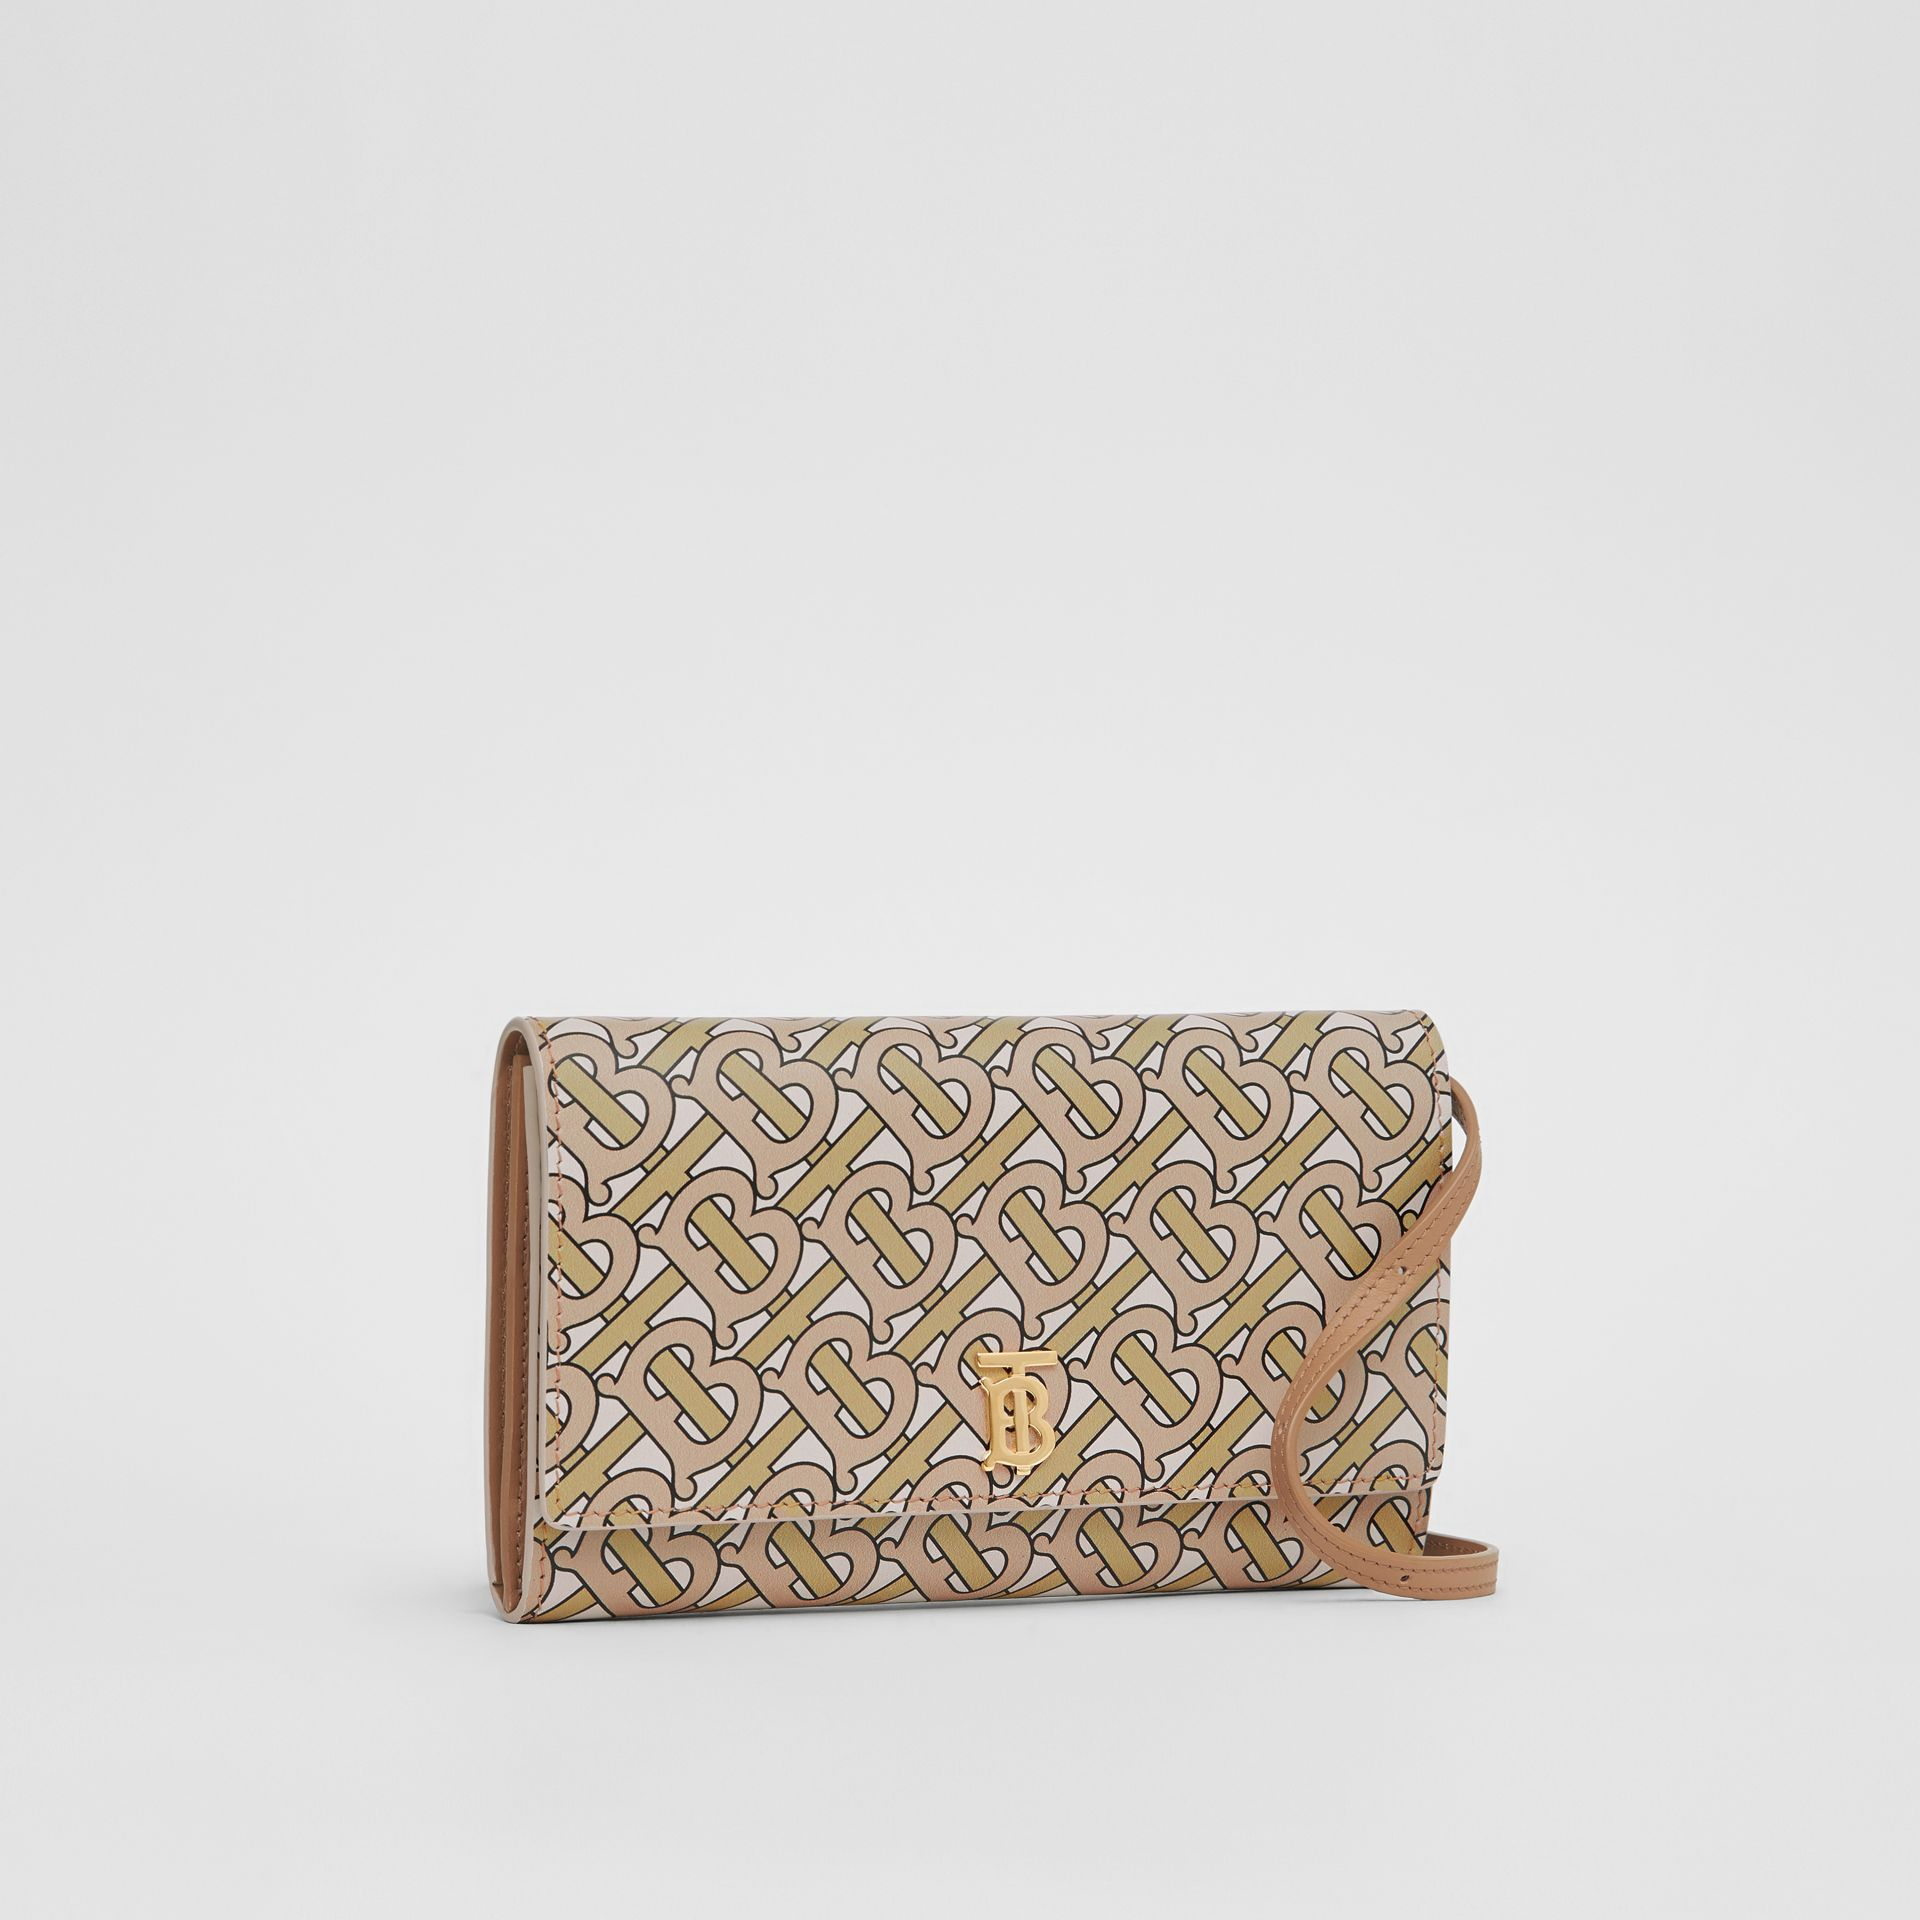 Monogram Print Leather Wallet with Detachable Strap in Beige - Women | Burberry United States - gallery image 6